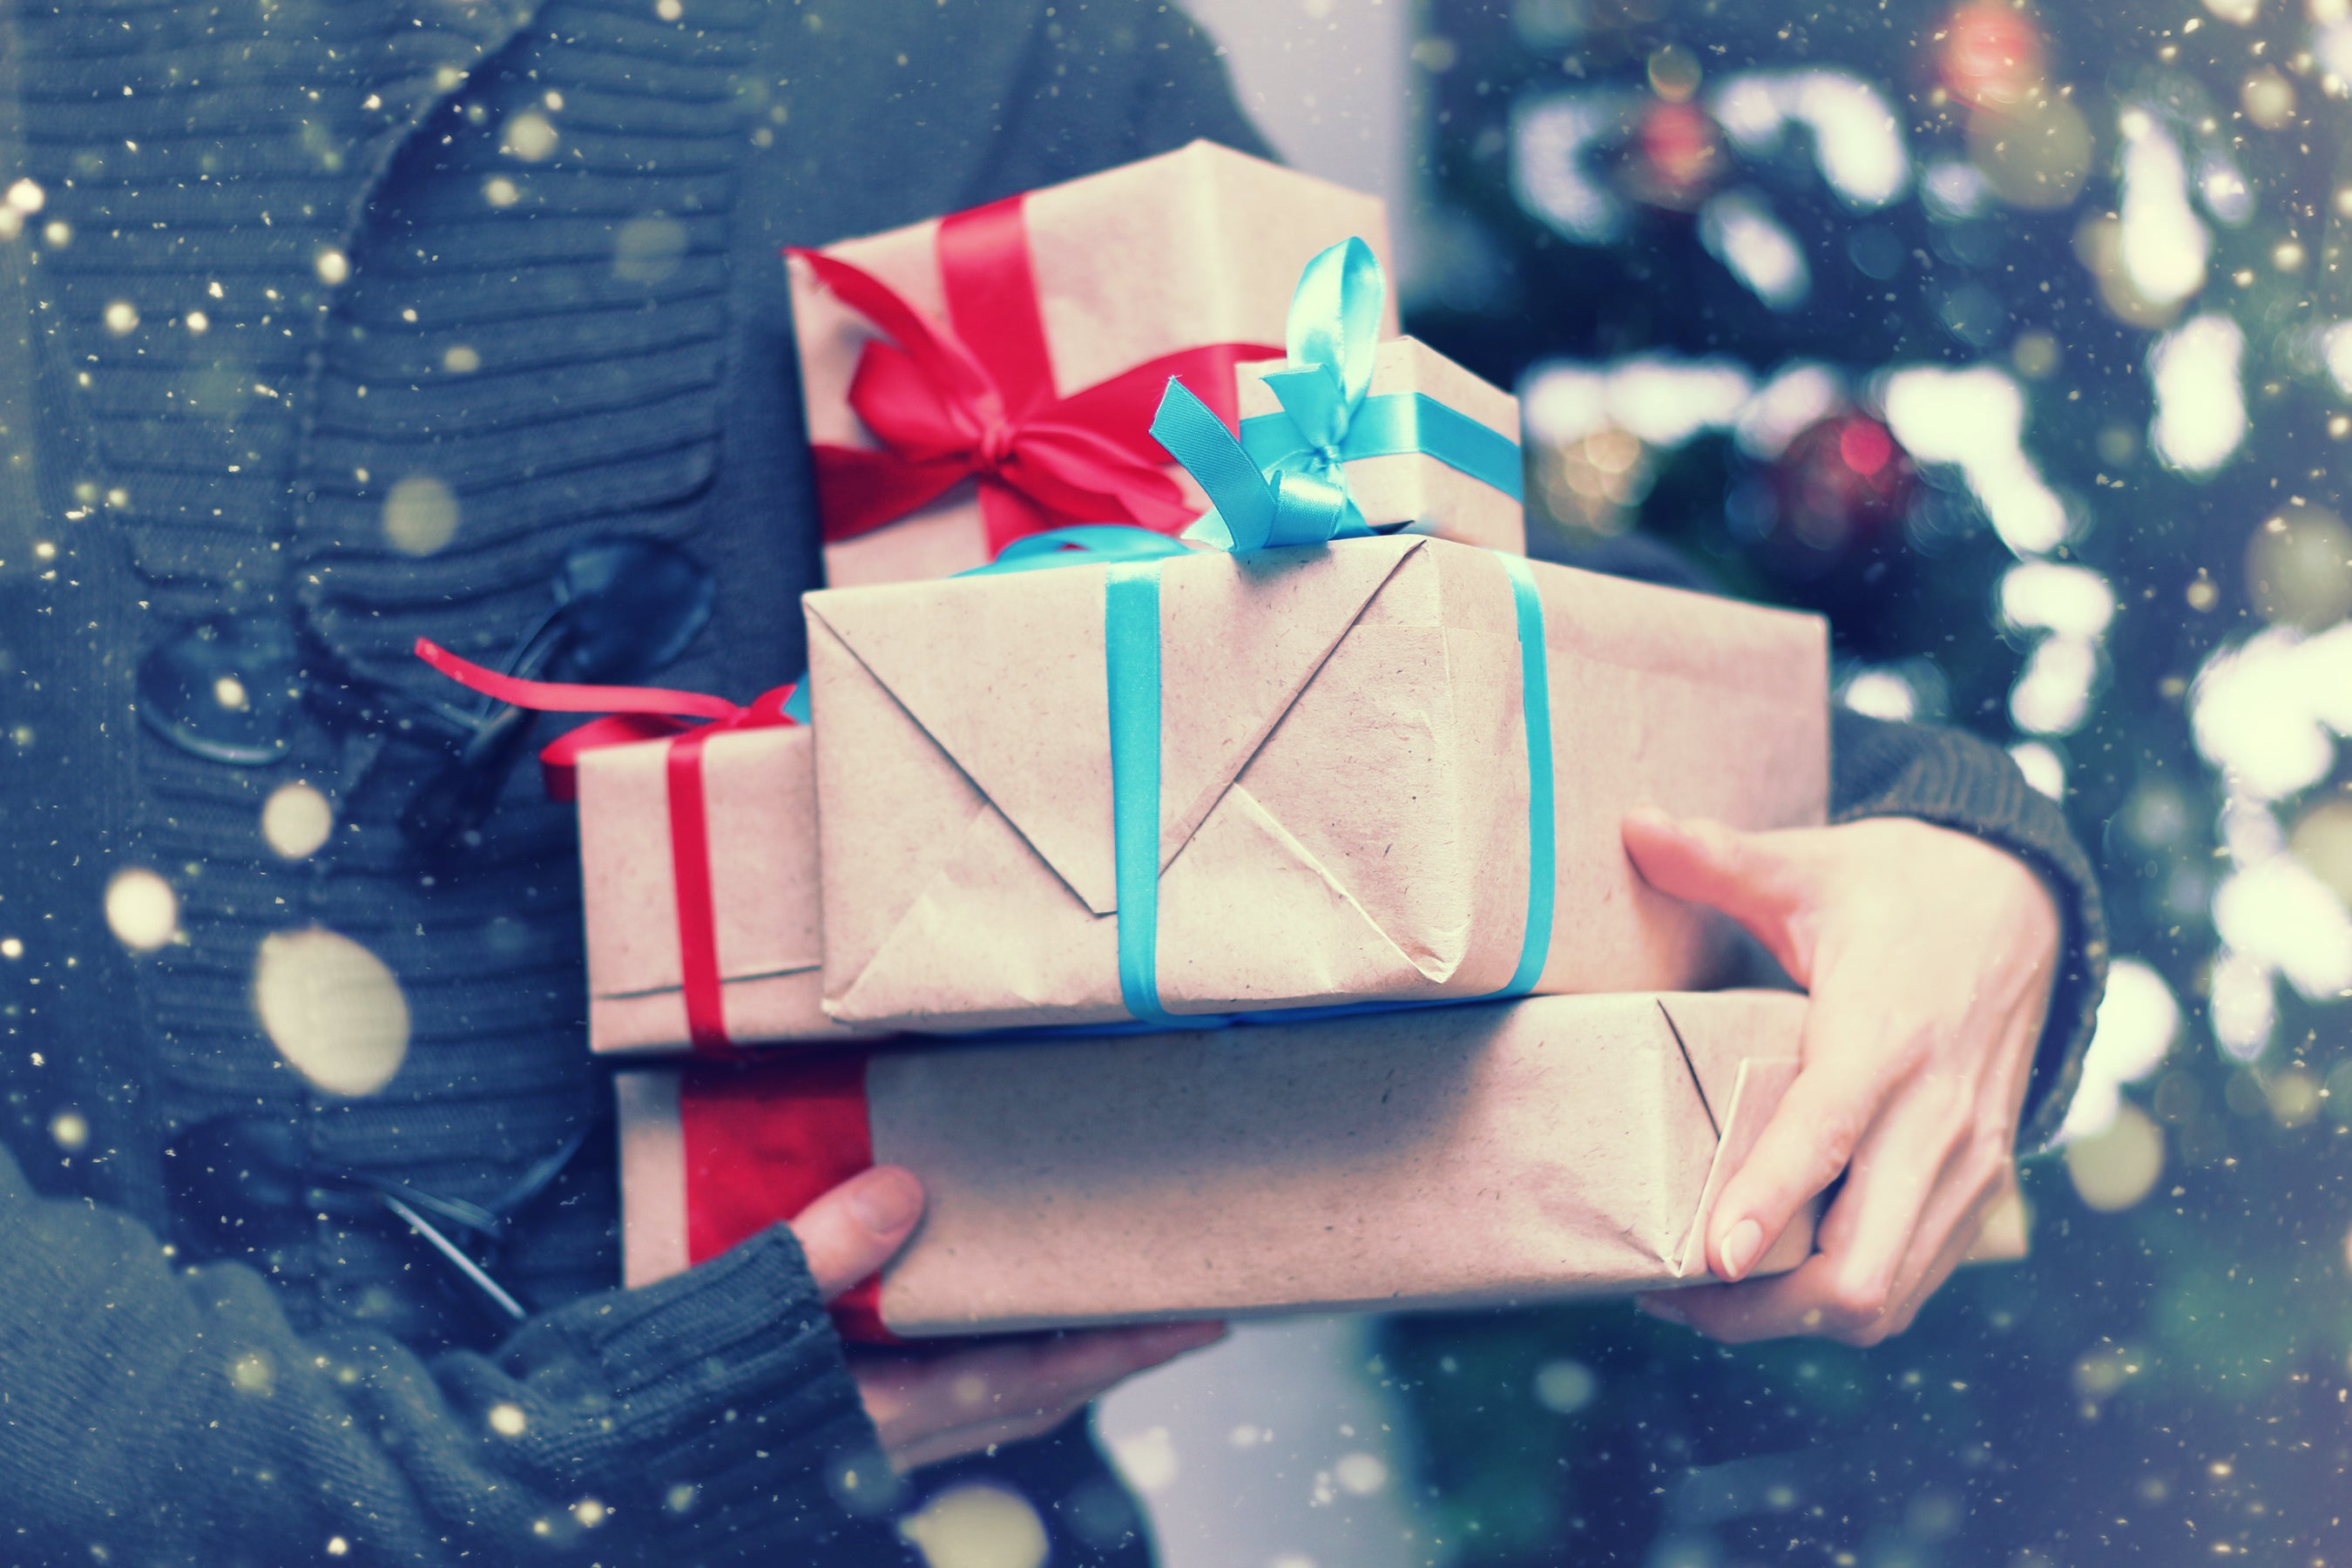 Christmas gifts for clients tax deductible